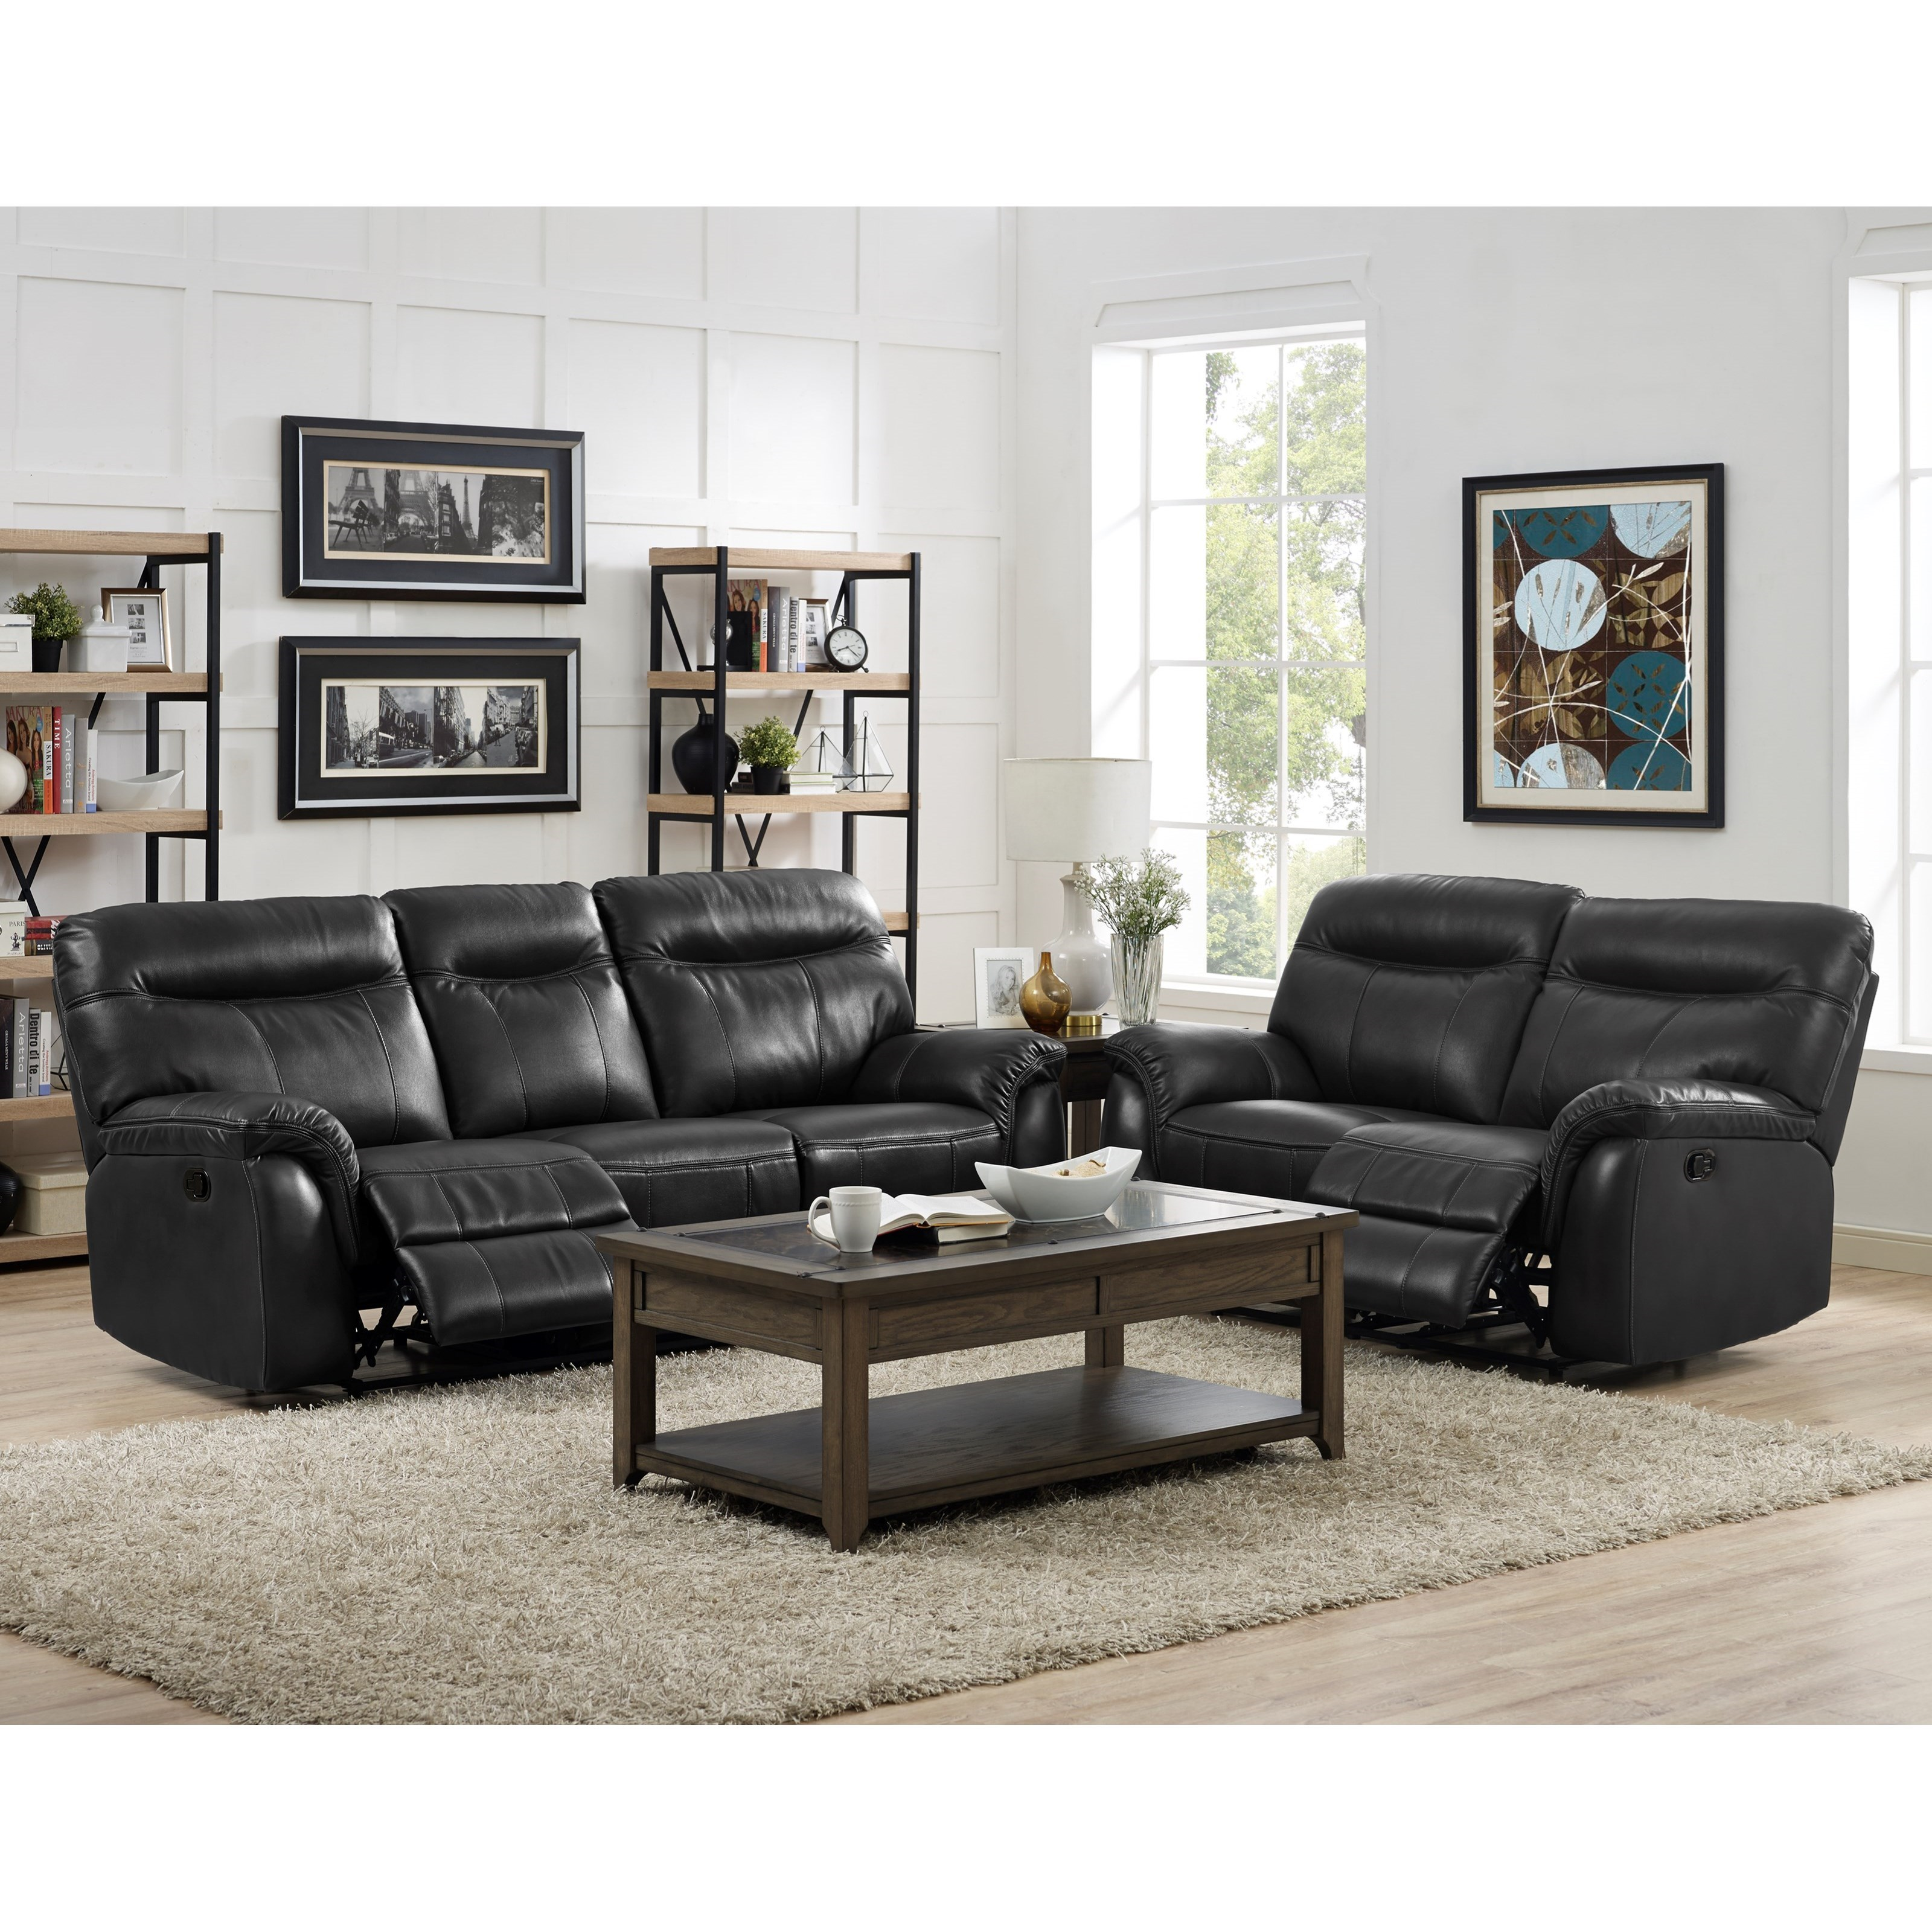 New Classic Atlas Reclining Living Room Group A1